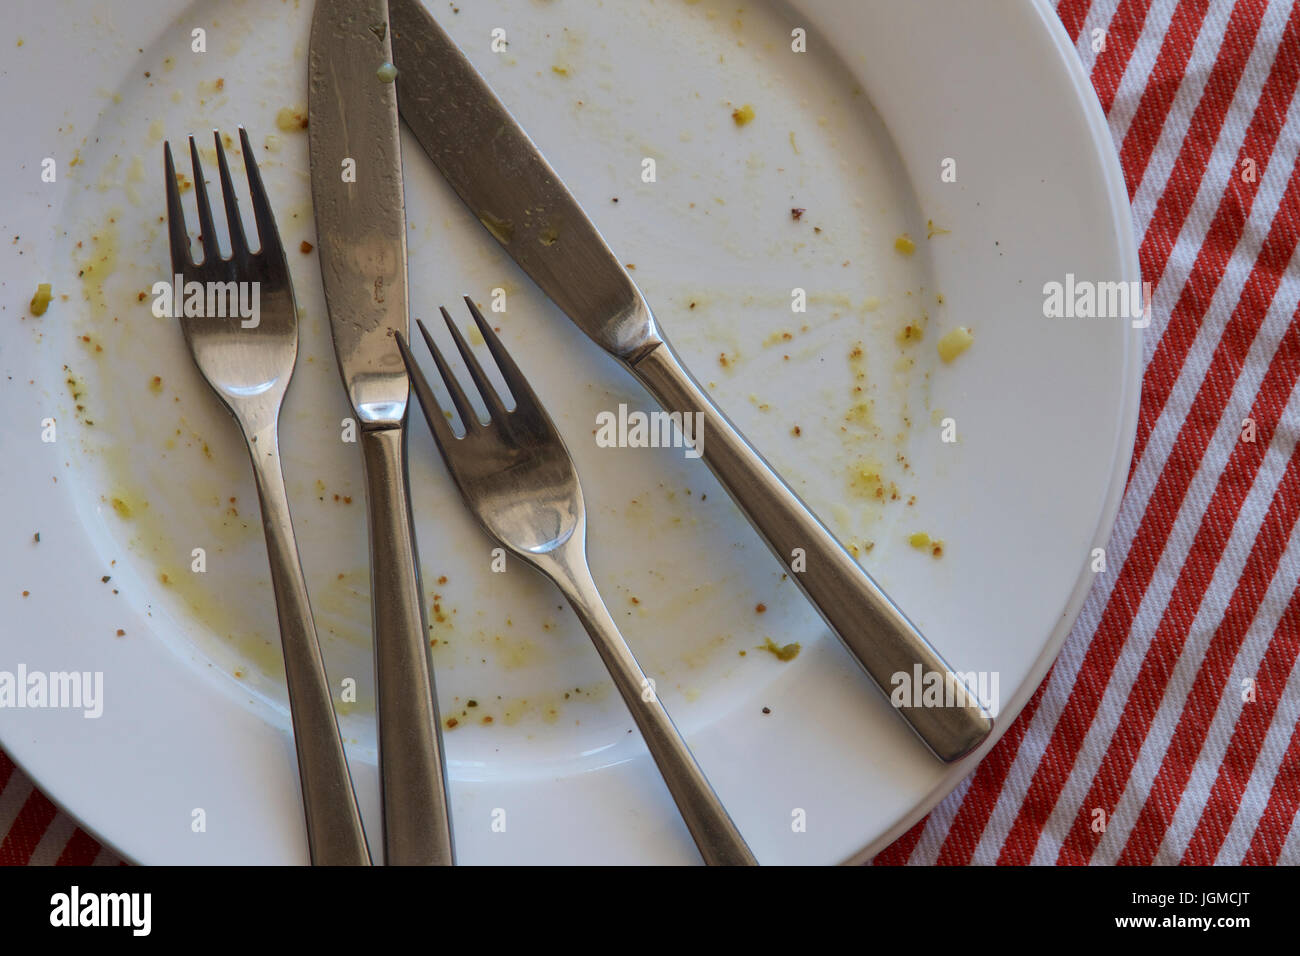 dirty cutlery stockfotos dirty cutlery bilder alamy. Black Bedroom Furniture Sets. Home Design Ideas